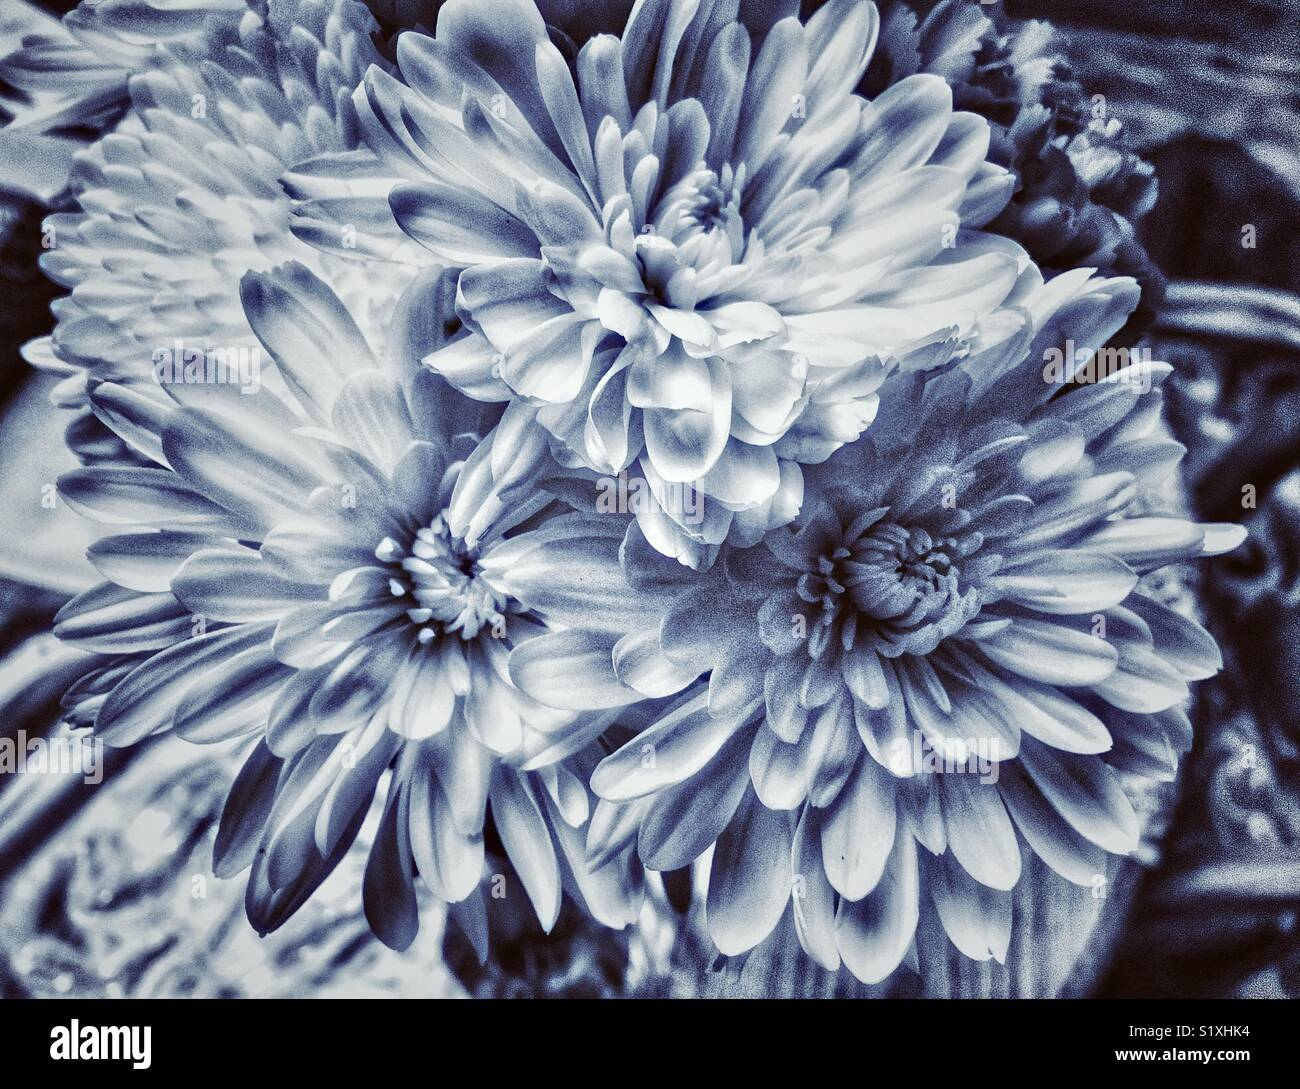 Bouquet of flowers with white chrysanthemums (mums) and white dahlias tinted blue - Stock Image